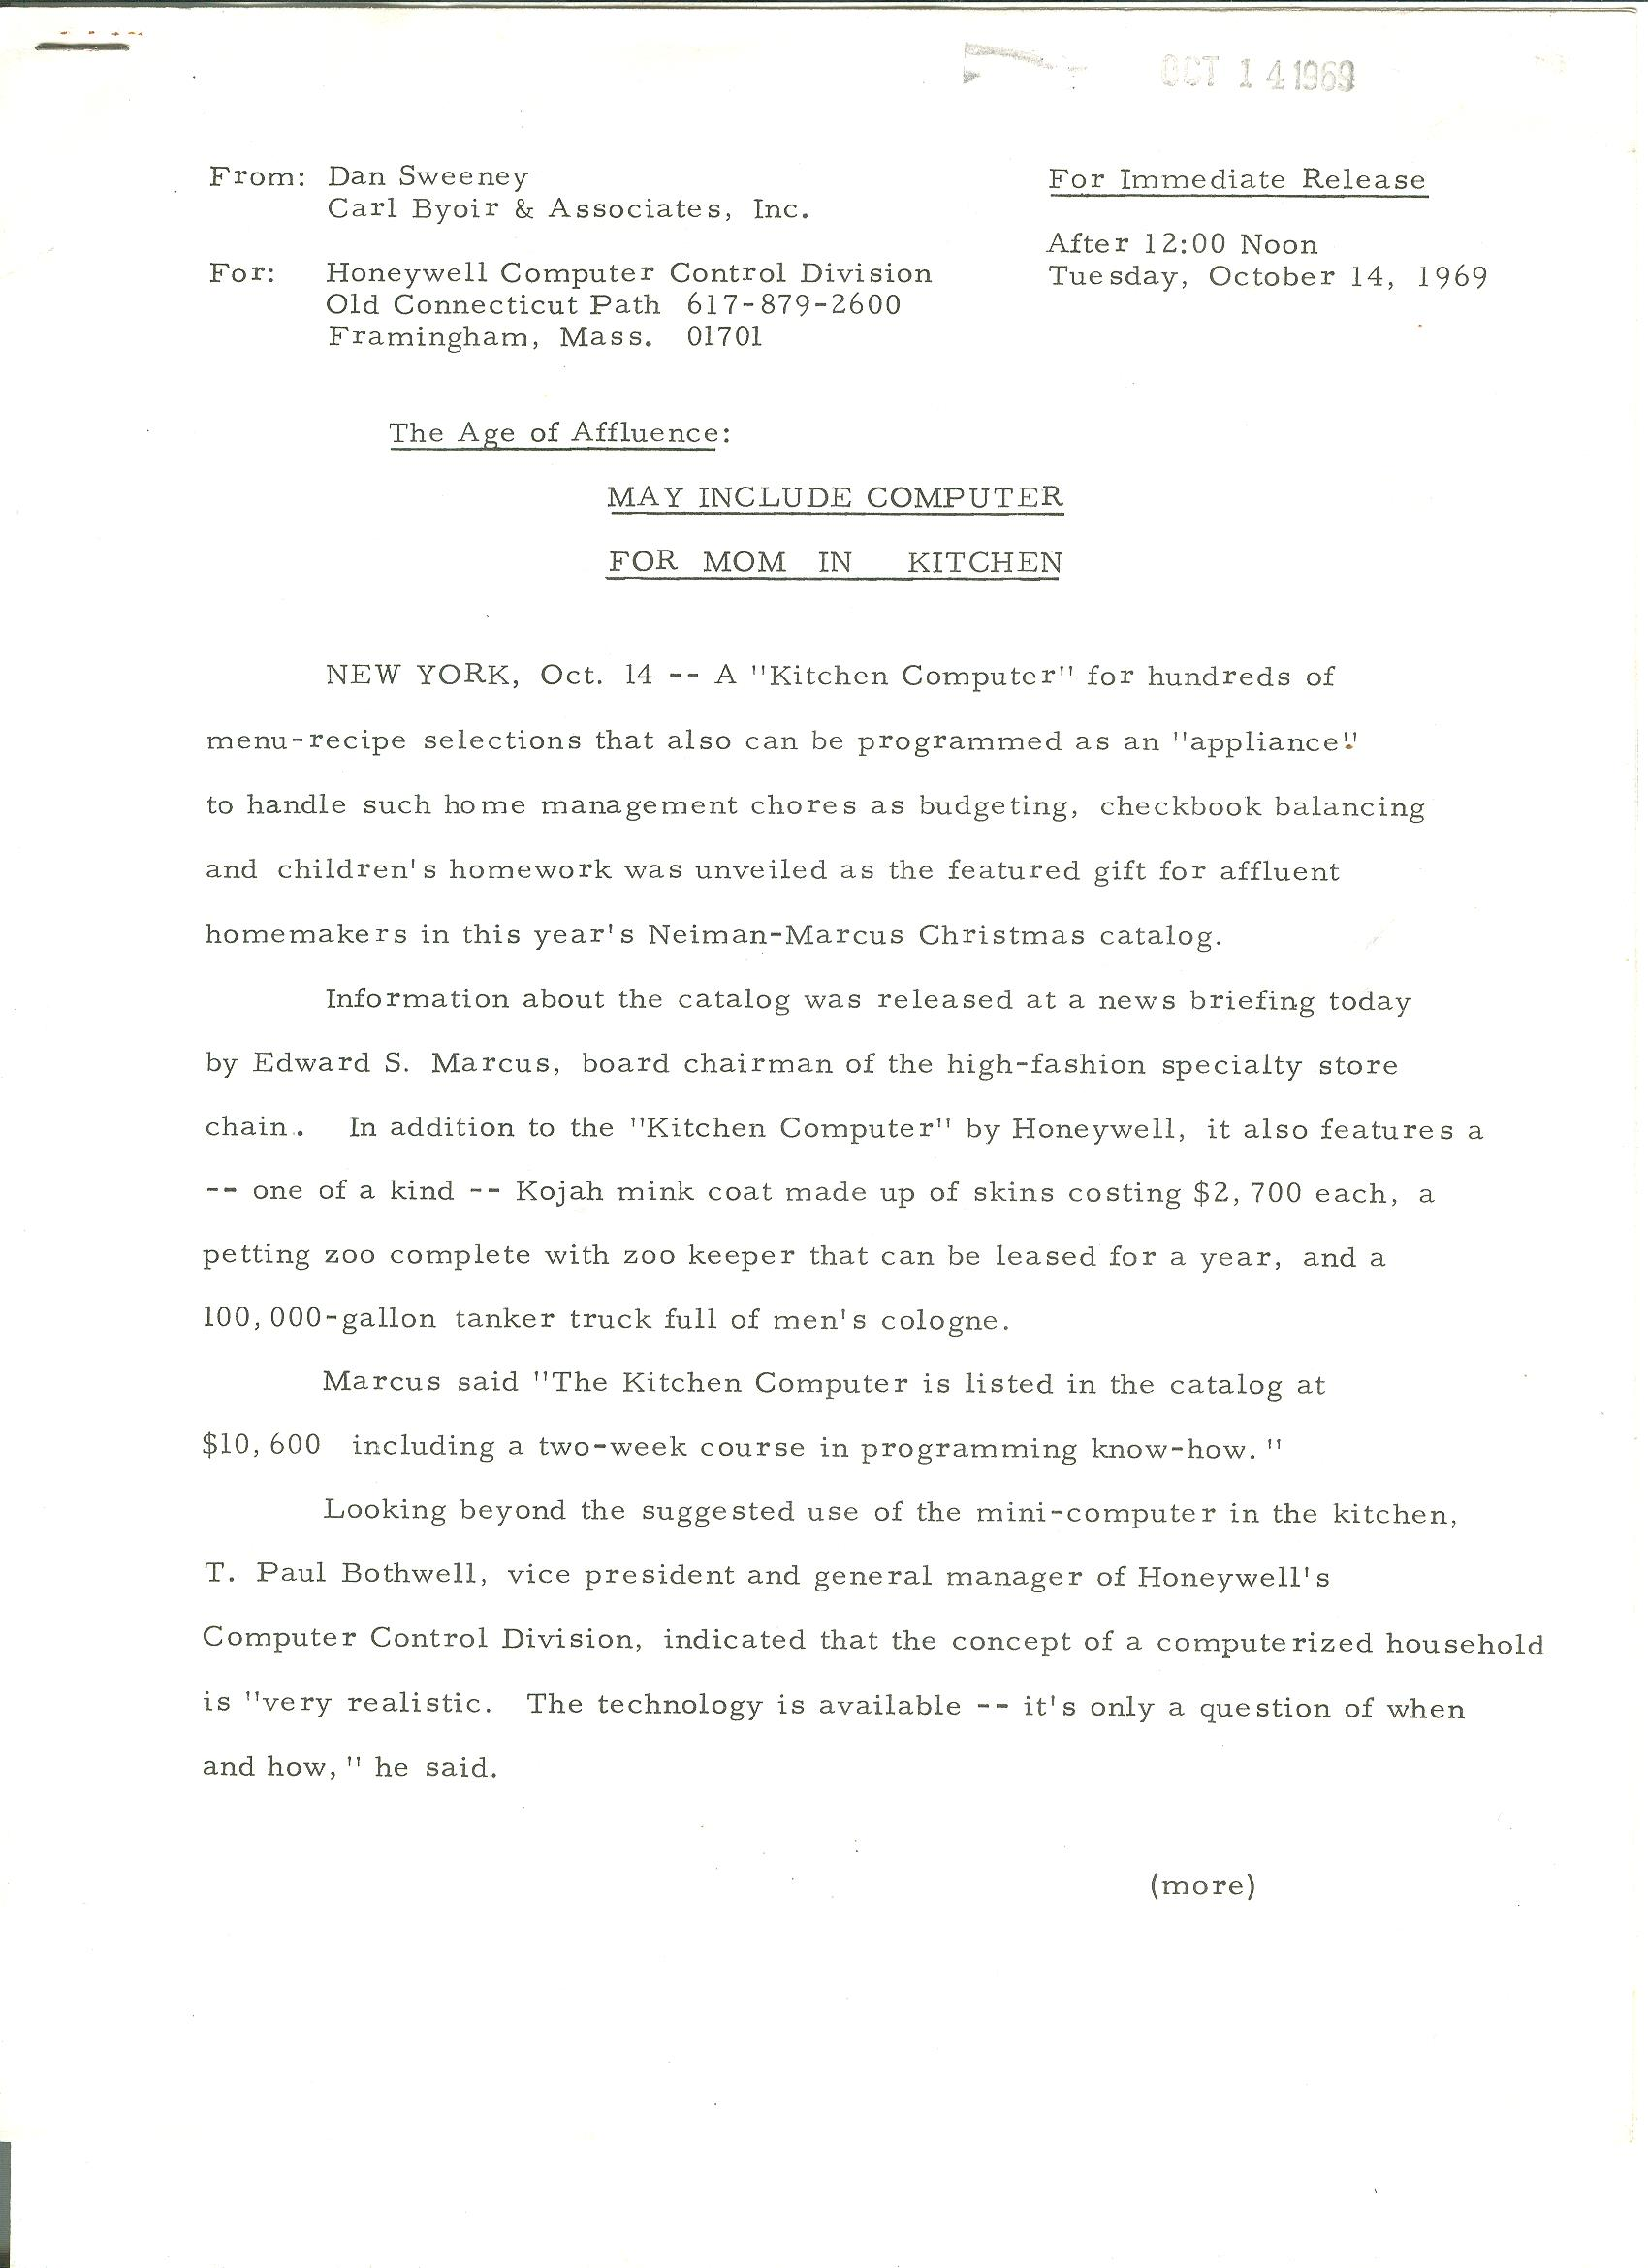 Press release for the Kitchen Computer (Honeywell 316)